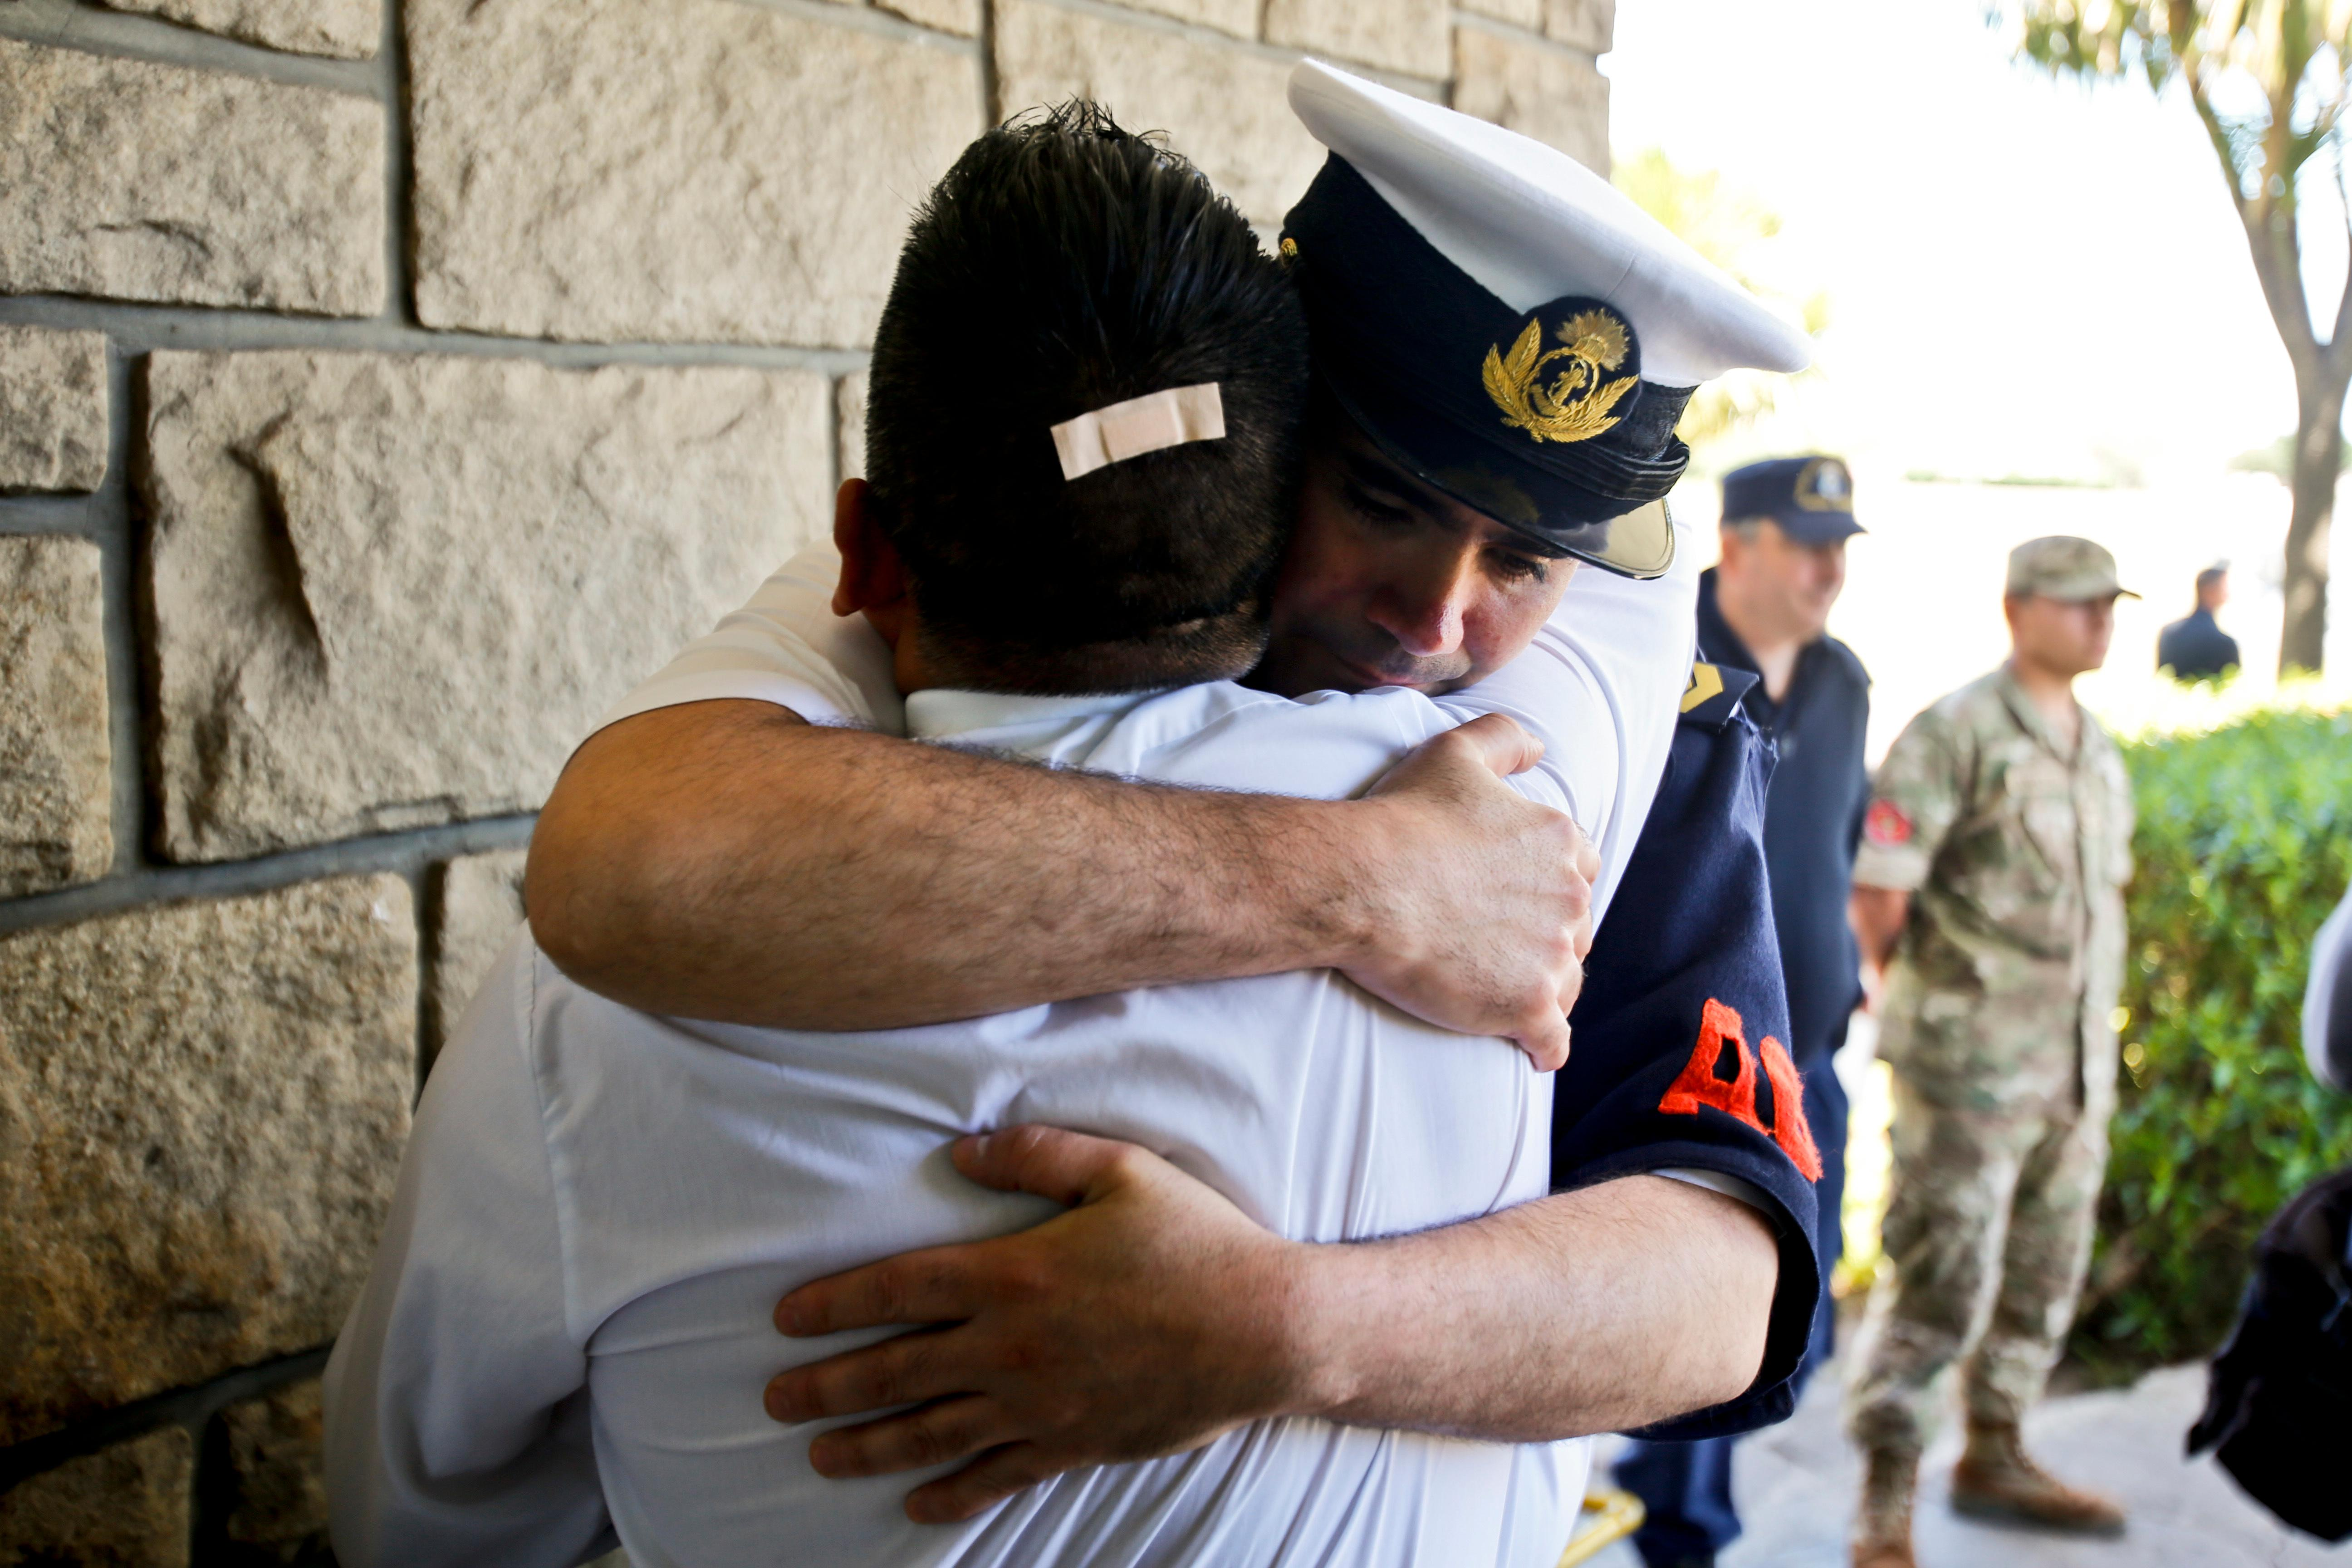 Argentine Navy officials embrace inside the Mar de Plata Naval Base after Argentina's Navy announced that a sound detected during the search for the missing ARA San Juan submarine is consistent with that of an explosion, in Mar de Plata, Argentina, Thursday, Nov. 23, 2017. A Navy spokesman said that the relatives of the crew have been informed and that the search will continue until there is full certainty about the fate of the ARA San Juan. He said there was no sign the explosion might be linked to any attack on the sub. (AP Photo/Esteban Felix)